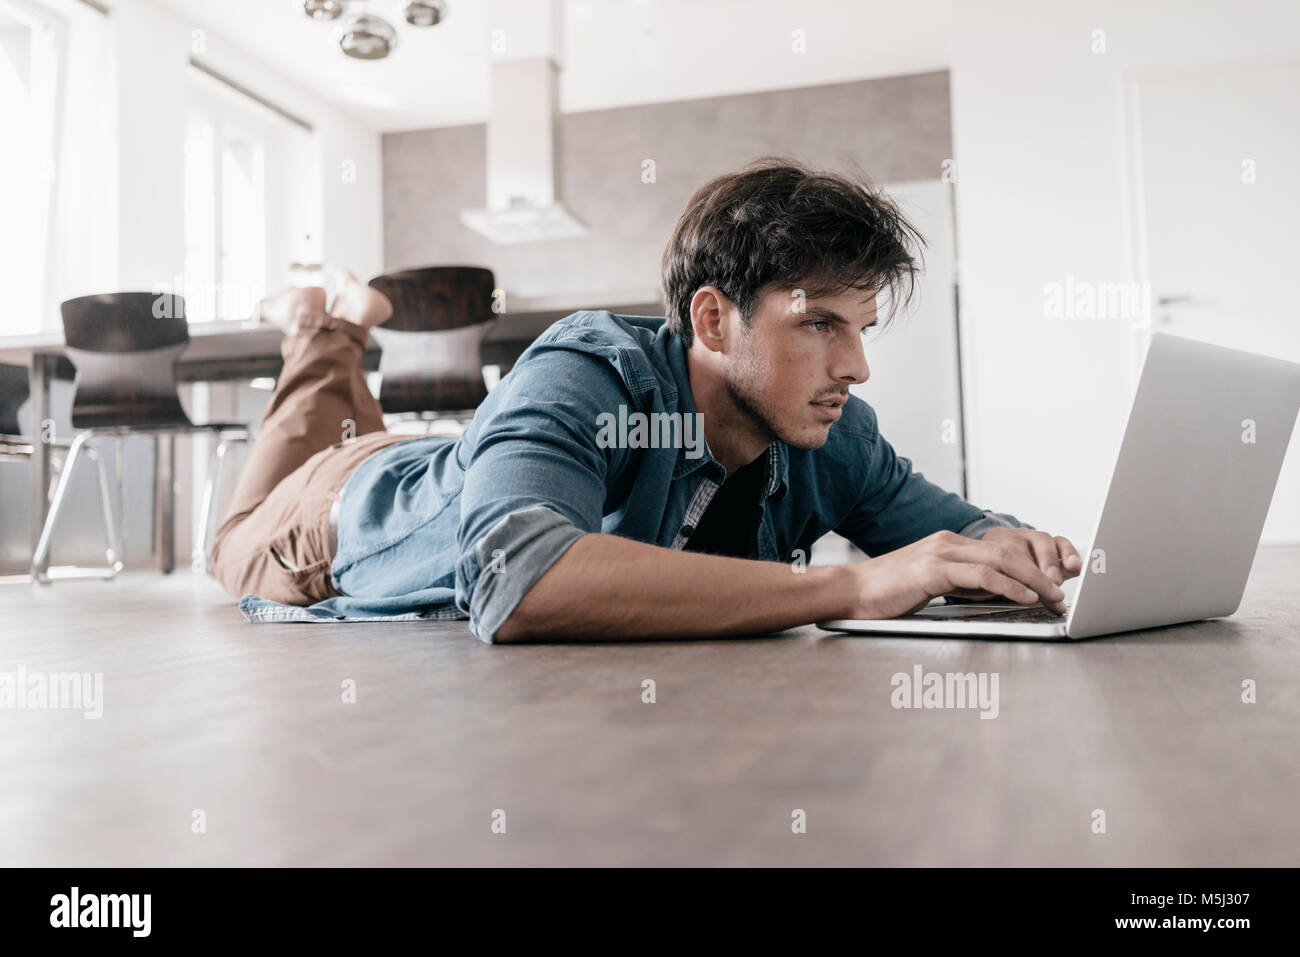 Man lying on the floor in a loft using laptop - Stock Image